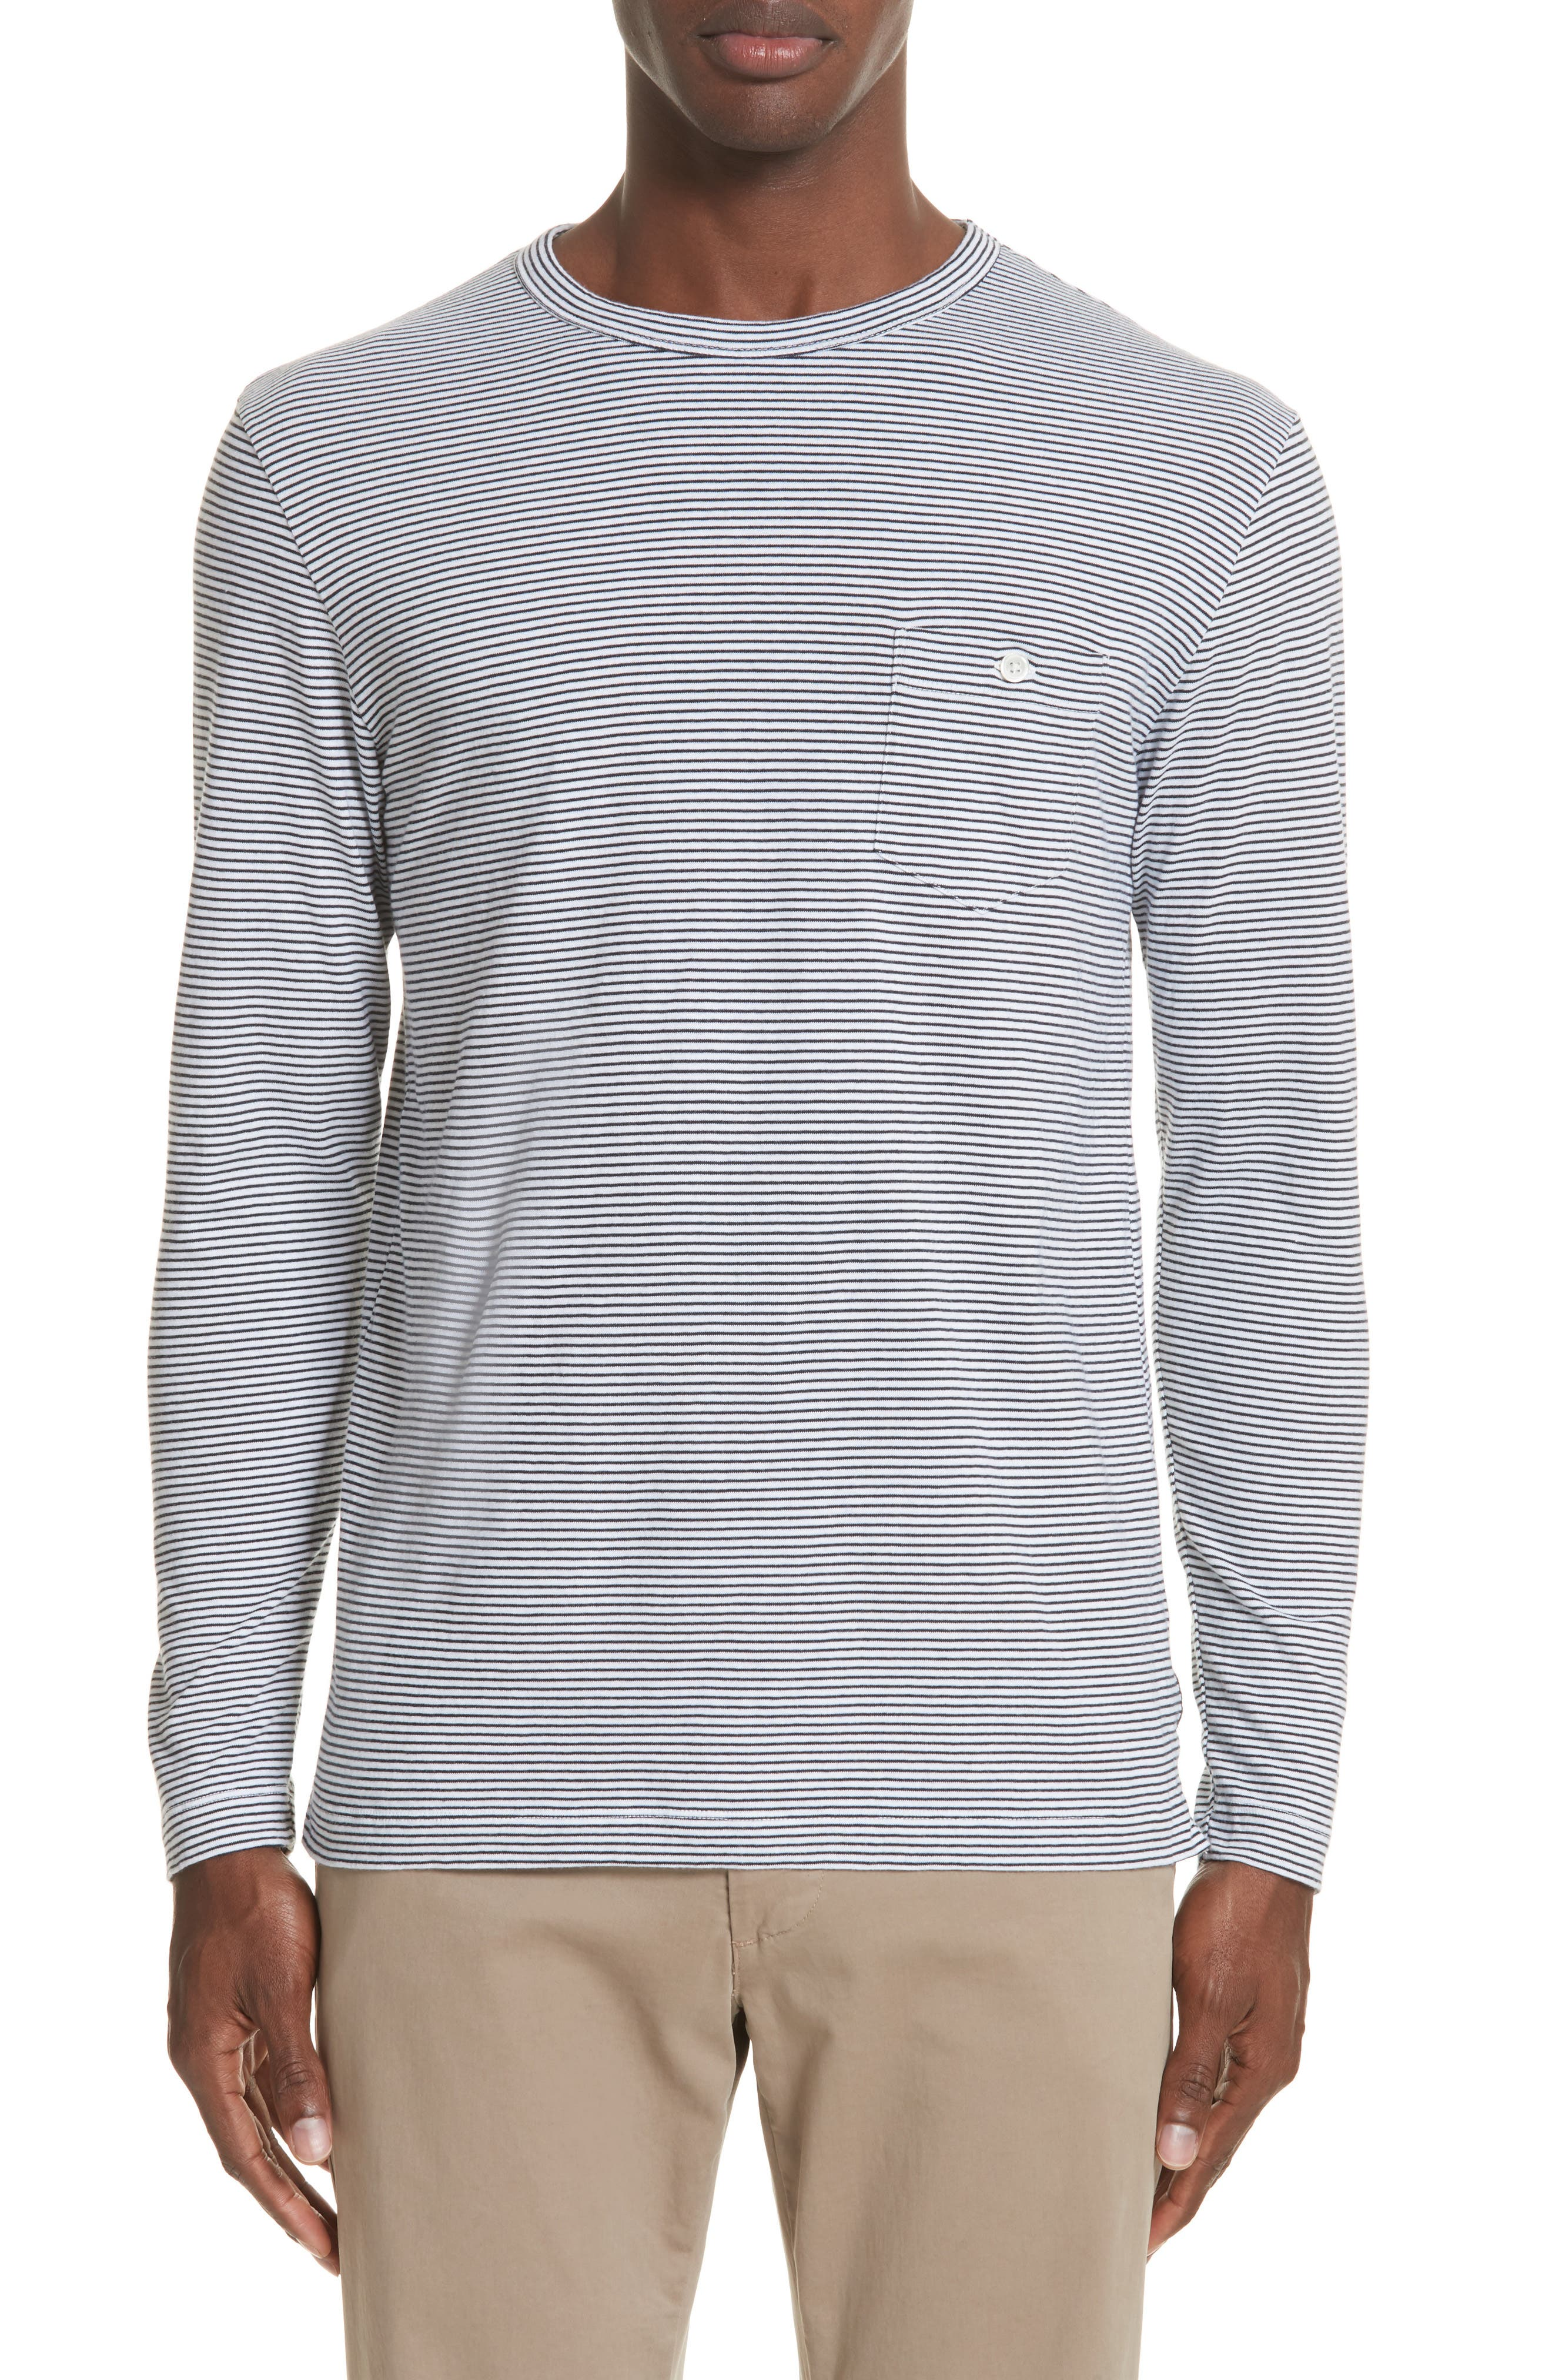 TODD SNYDER Stripe Long Sleeve T-Shirt in Navy